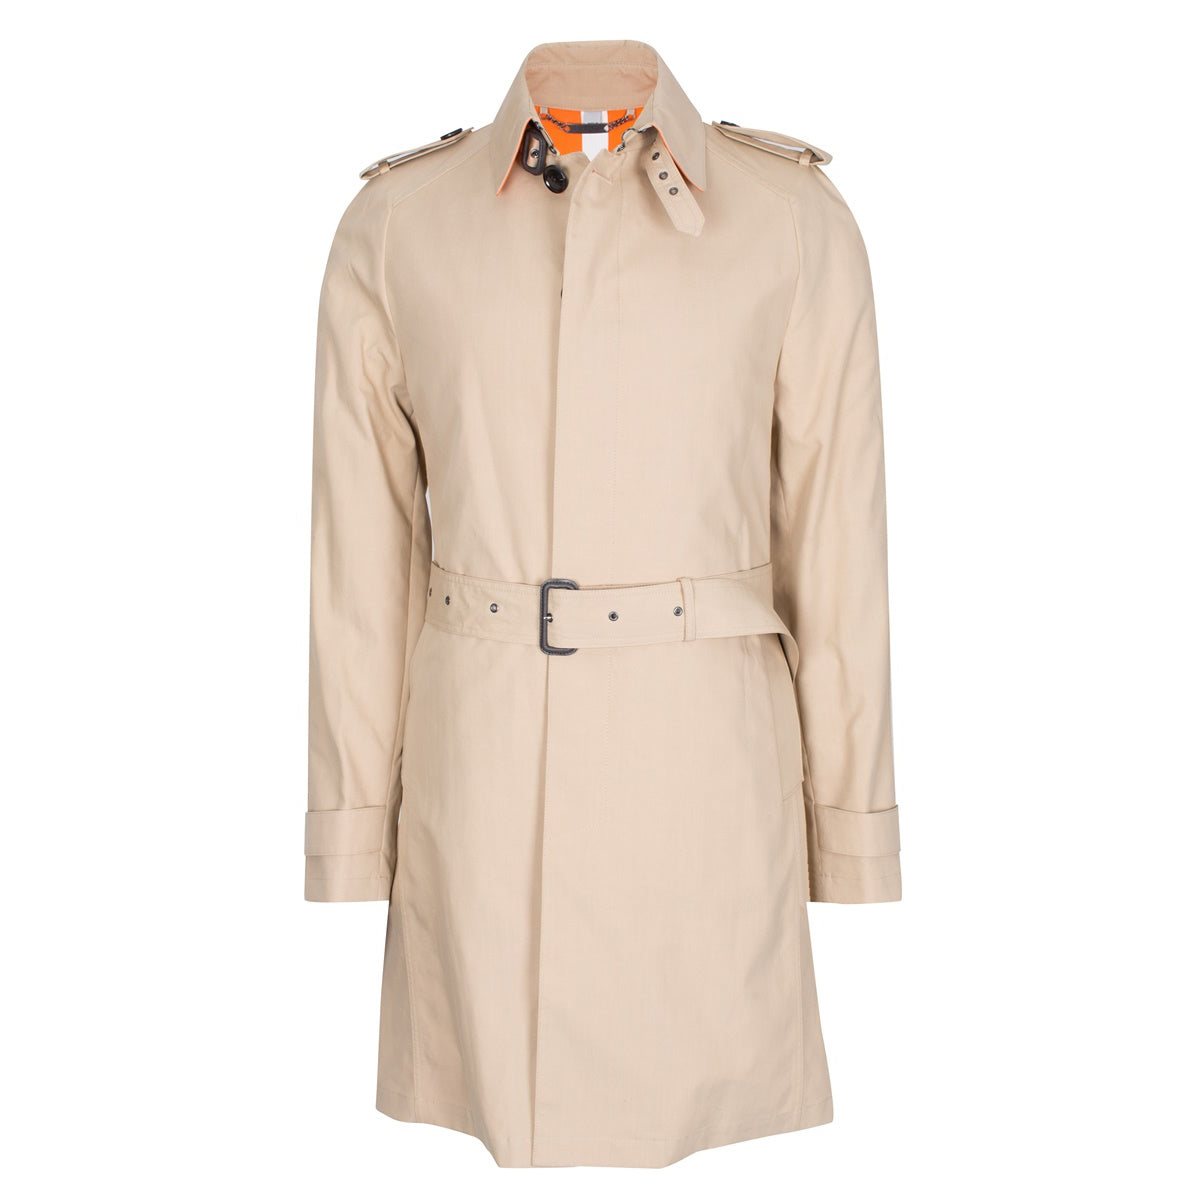 Light Tan Waterproof Belted Mac